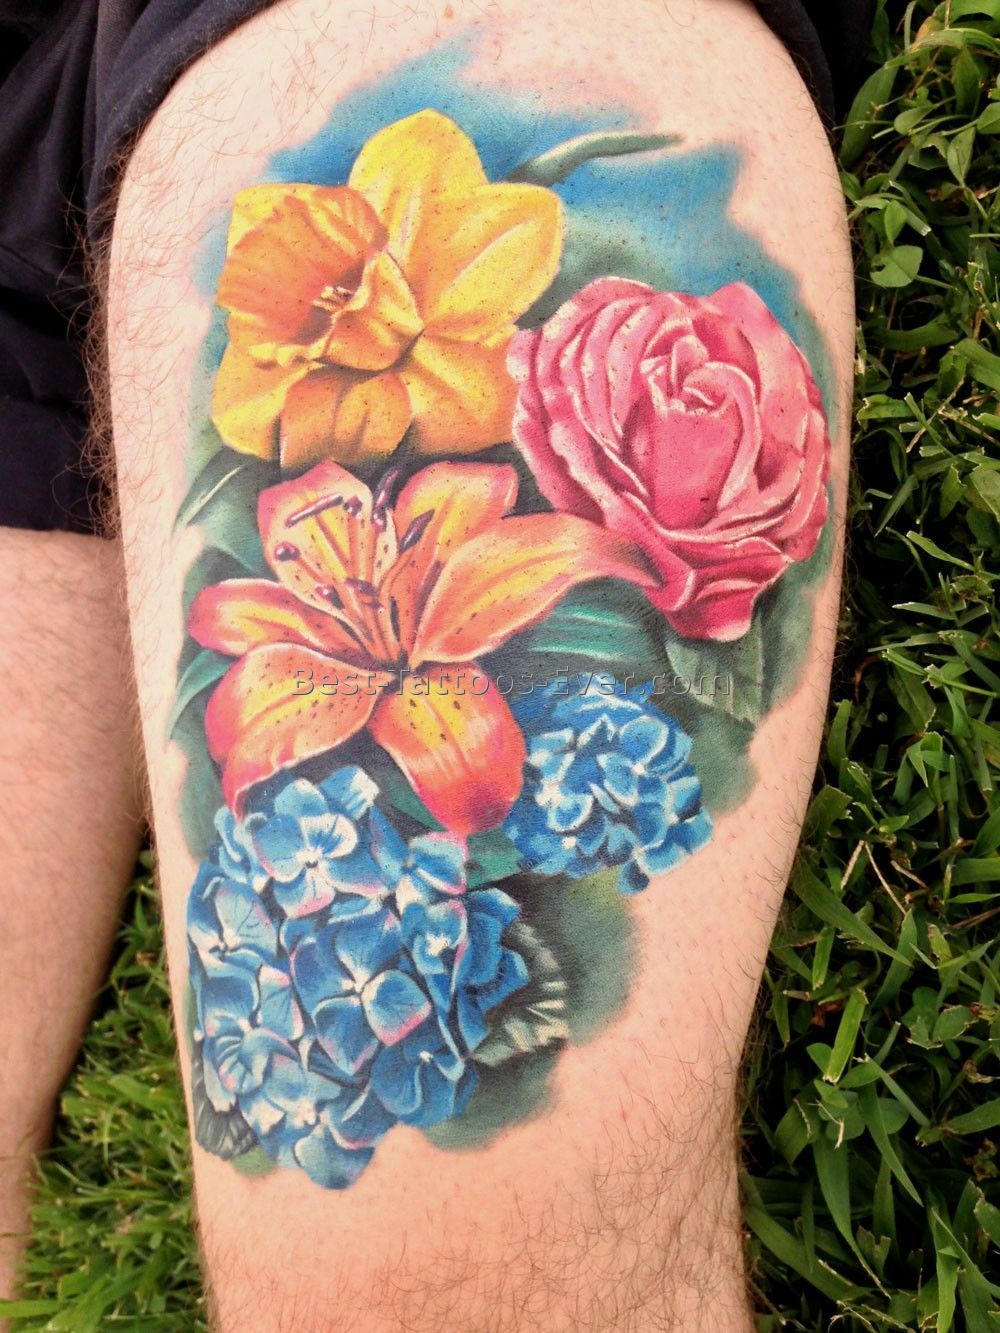 Narcissus Flower Tattoo 10 Best Tattoos Ever Narcissus Flower Tattoos Tiny Flower Tattoos Daffodil Tattoo